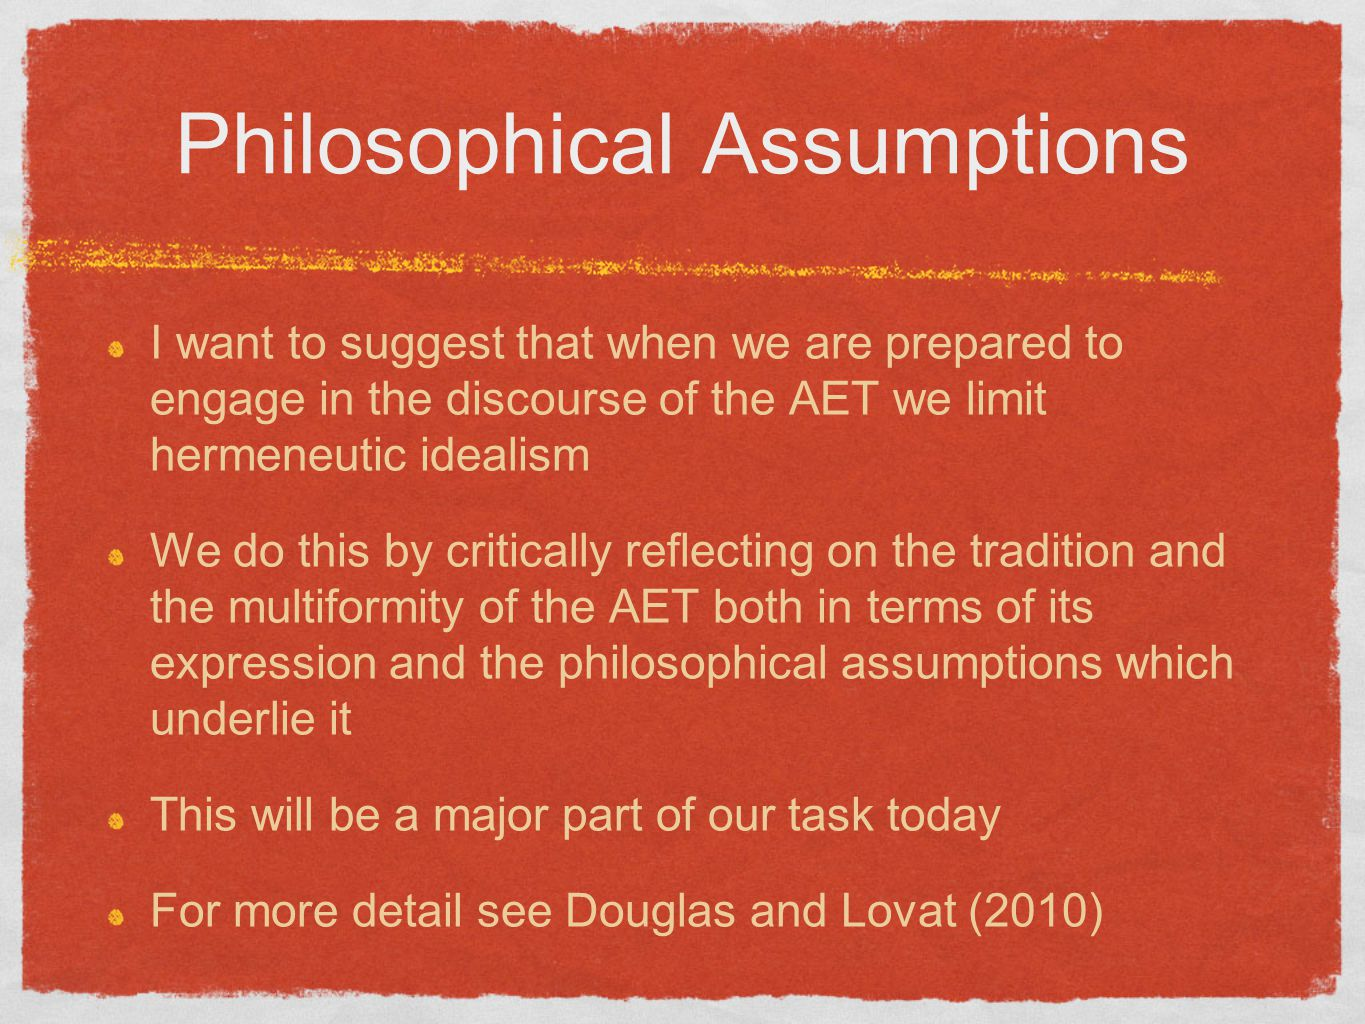 Philosophical Assumptions I want to suggest that when we are prepared to engage in the discourse of the AET we limit hermeneutic idealism We do this by critically reflecting on the tradition and the multiformity of the AET both in terms of its expression and the philosophical assumptions which underlie it This will be a major part of our task today For more detail see Douglas and Lovat (2010)